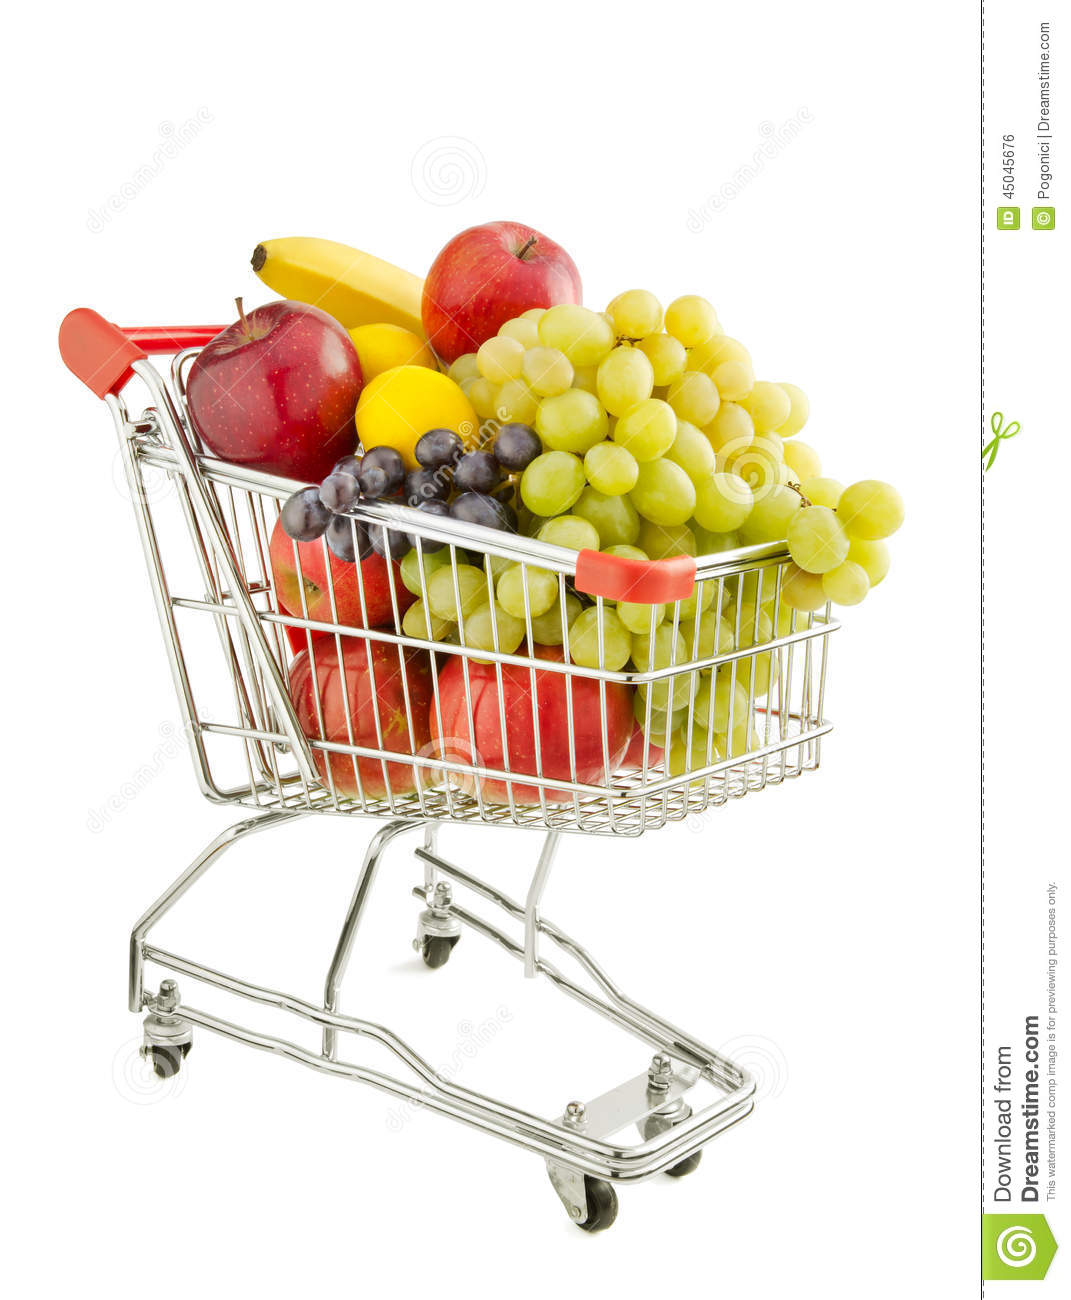 Healthy Food Shopping Stock Photo Image Of Lemon Loss